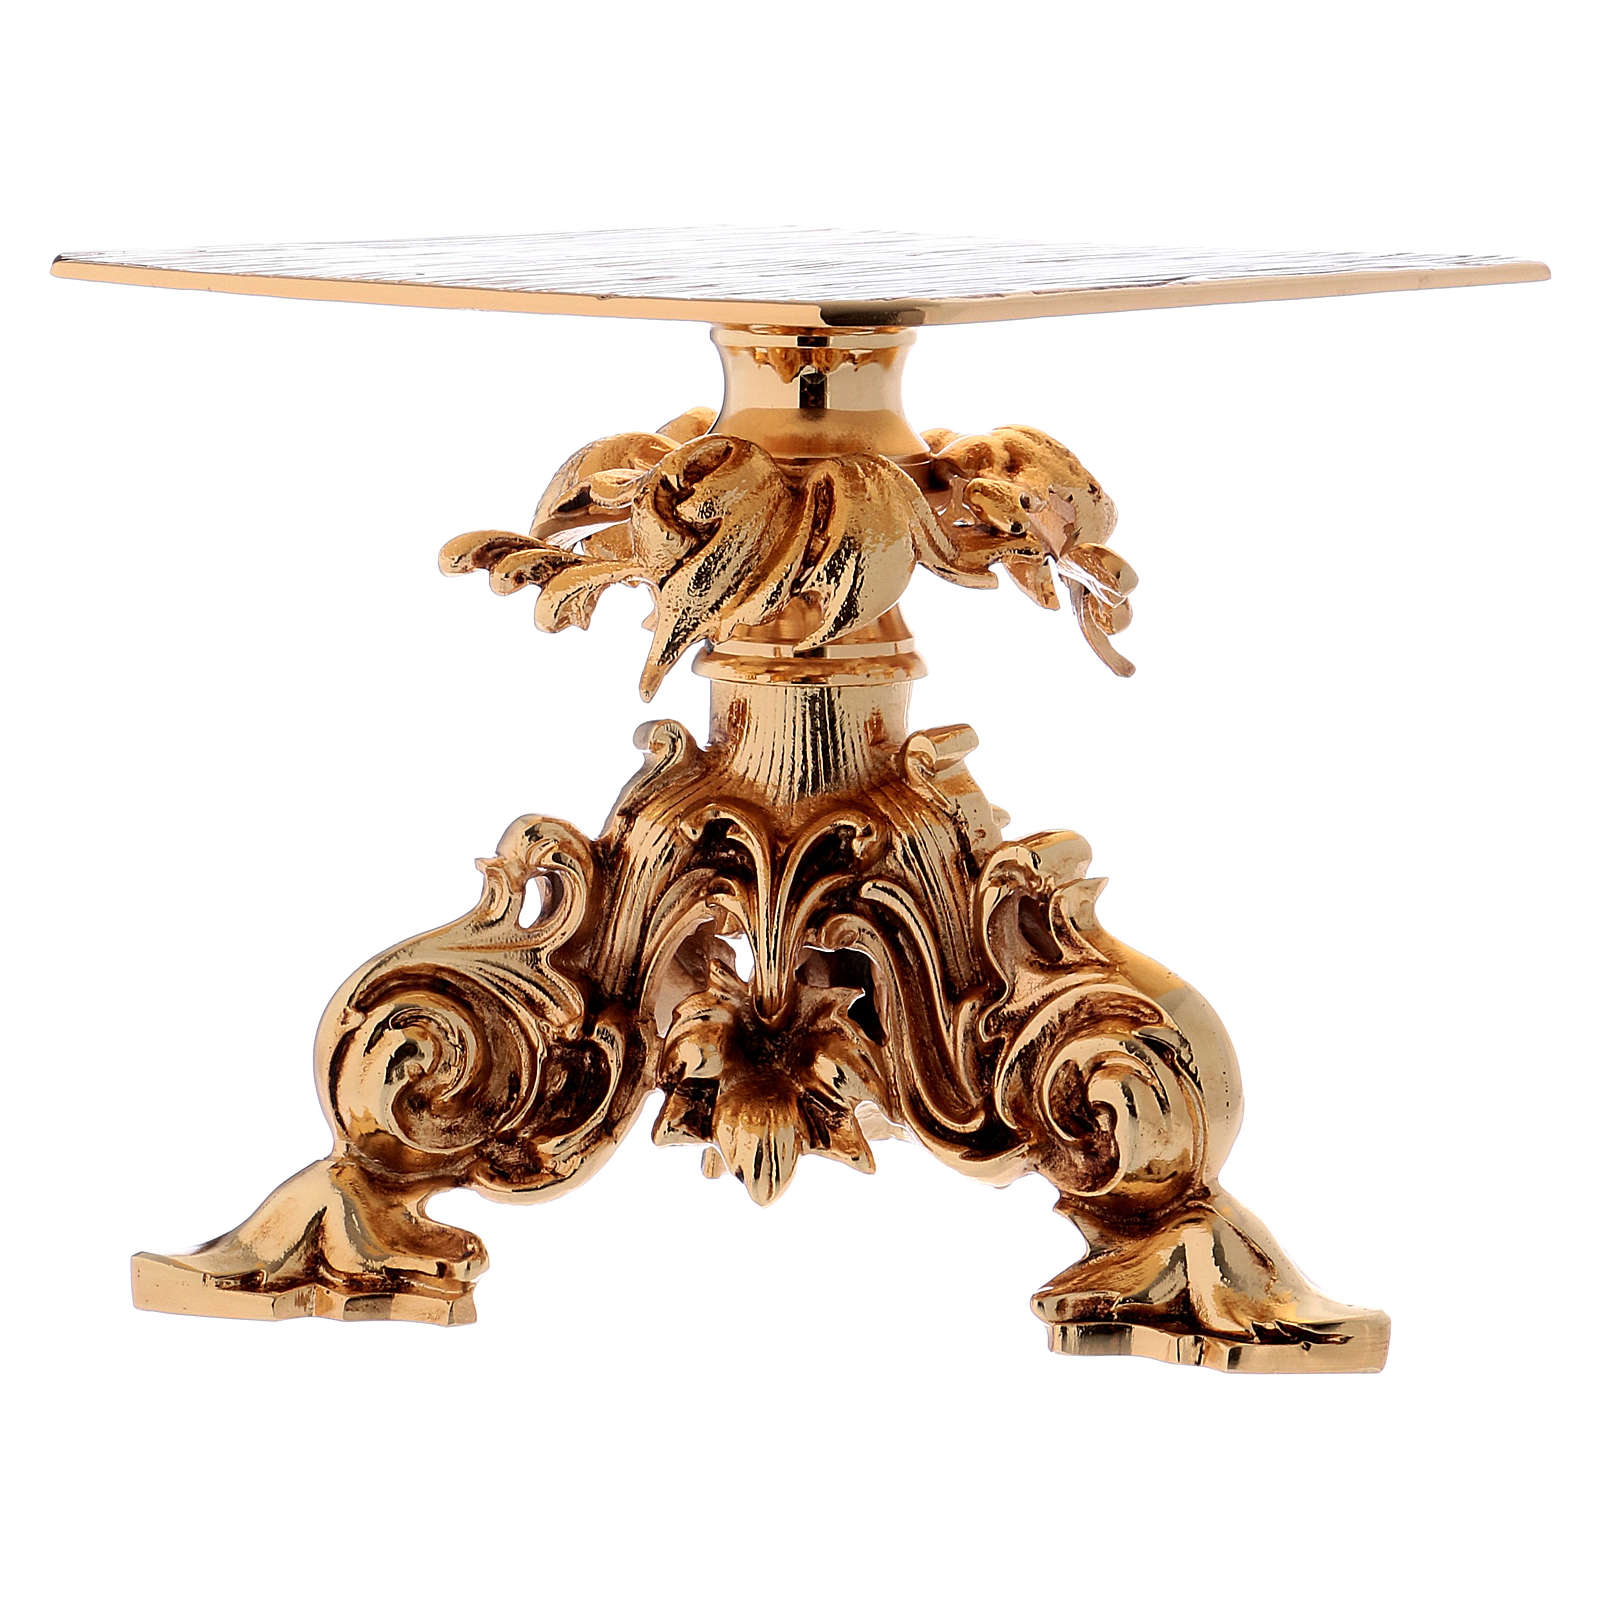 Monstrance stand 24x22cm gold-plated brass, baroque style 4